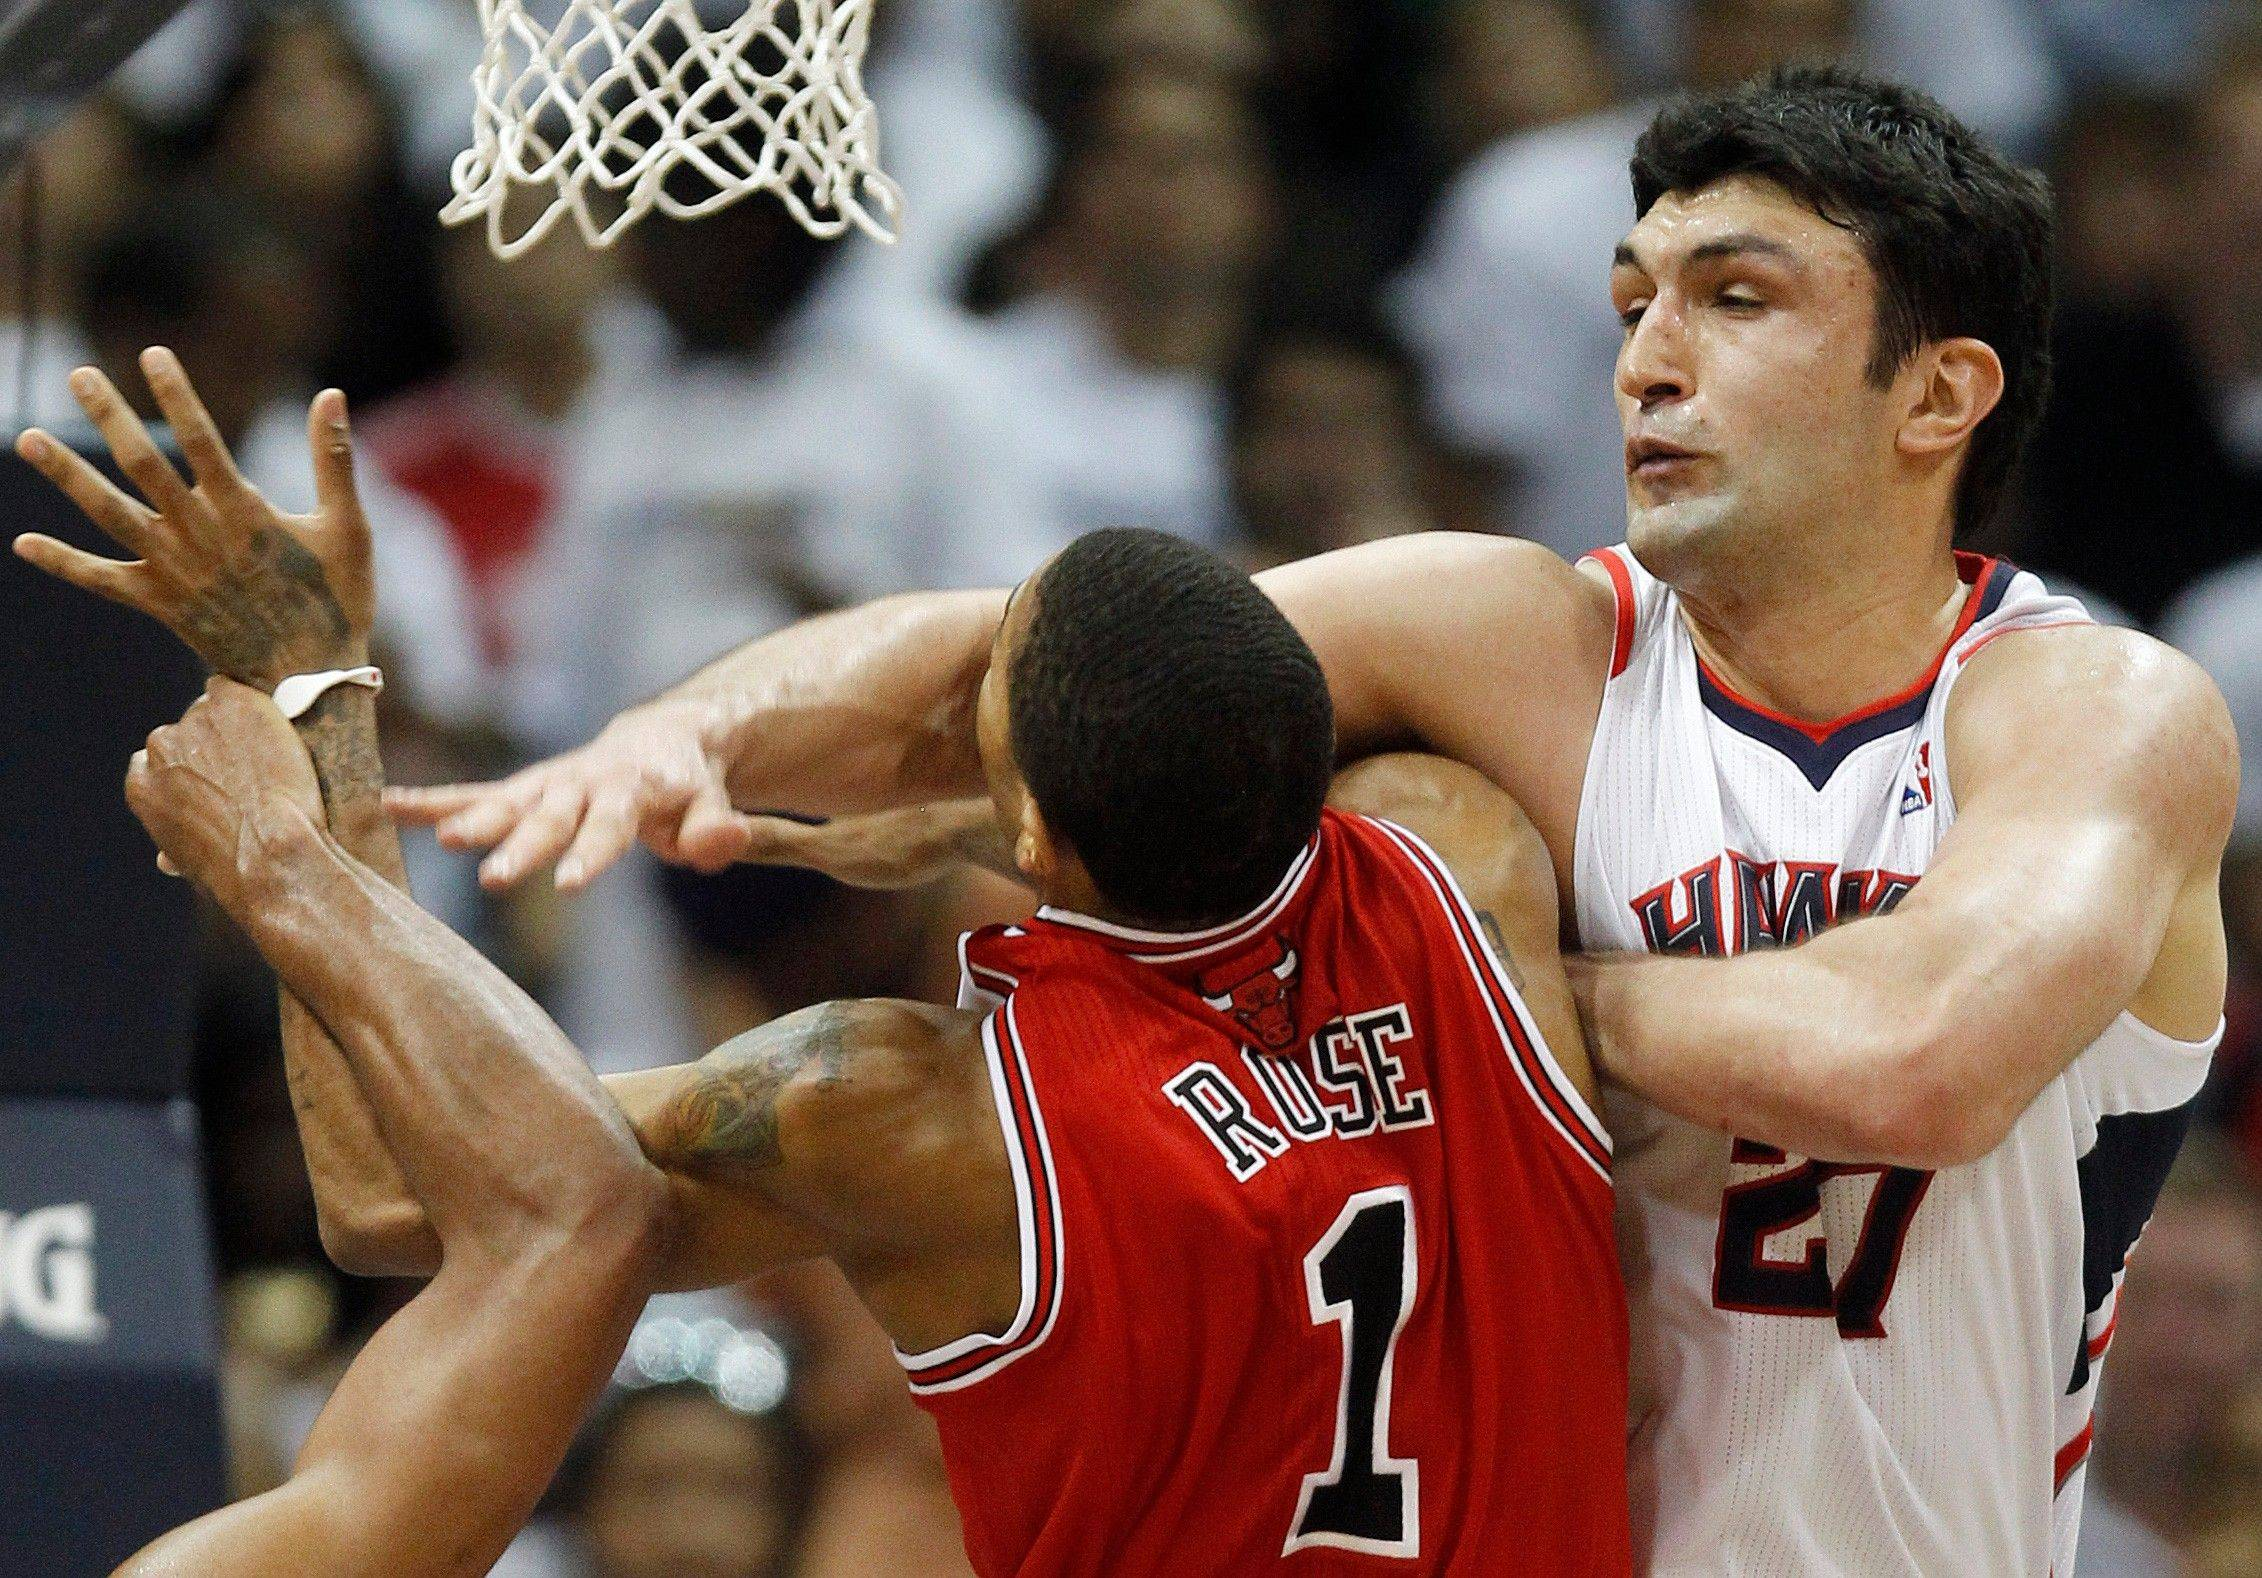 Bulls guard Derrick Rose goes to the hoop and runs into the defense of Hawks center Zaza Pachulia in Game 6 in Atlanta Thursday.